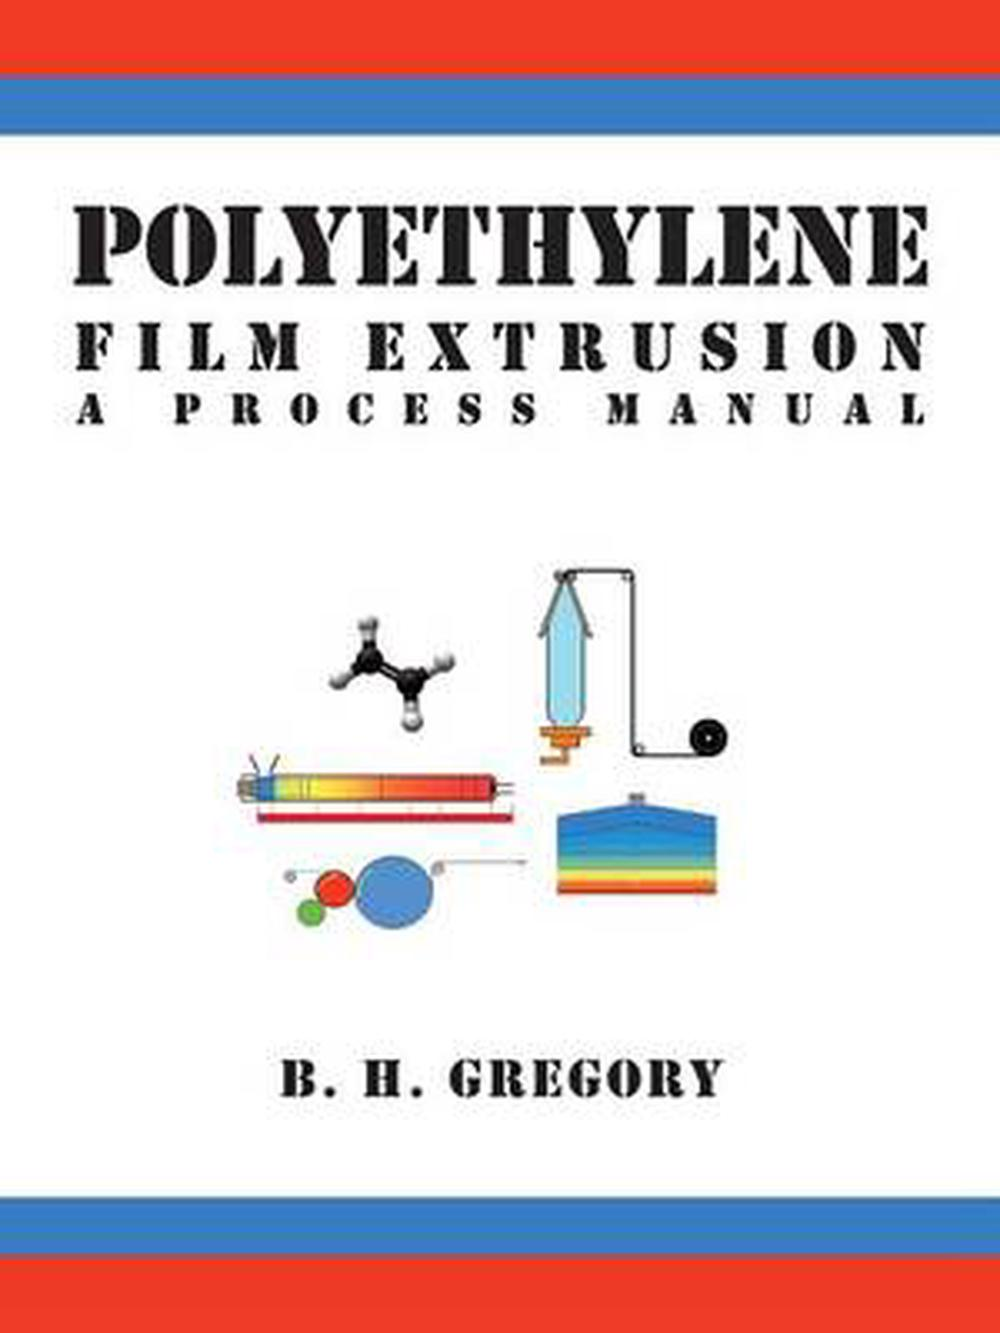 Polyethylene Film Extrusion. by Gregory B. H.